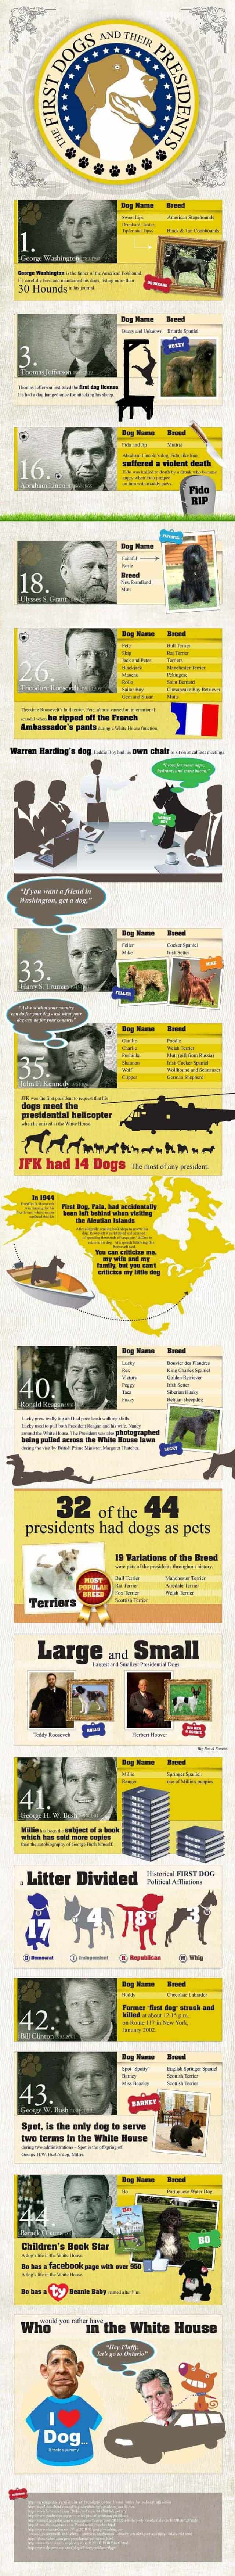 Dogs of the presidents Infographic